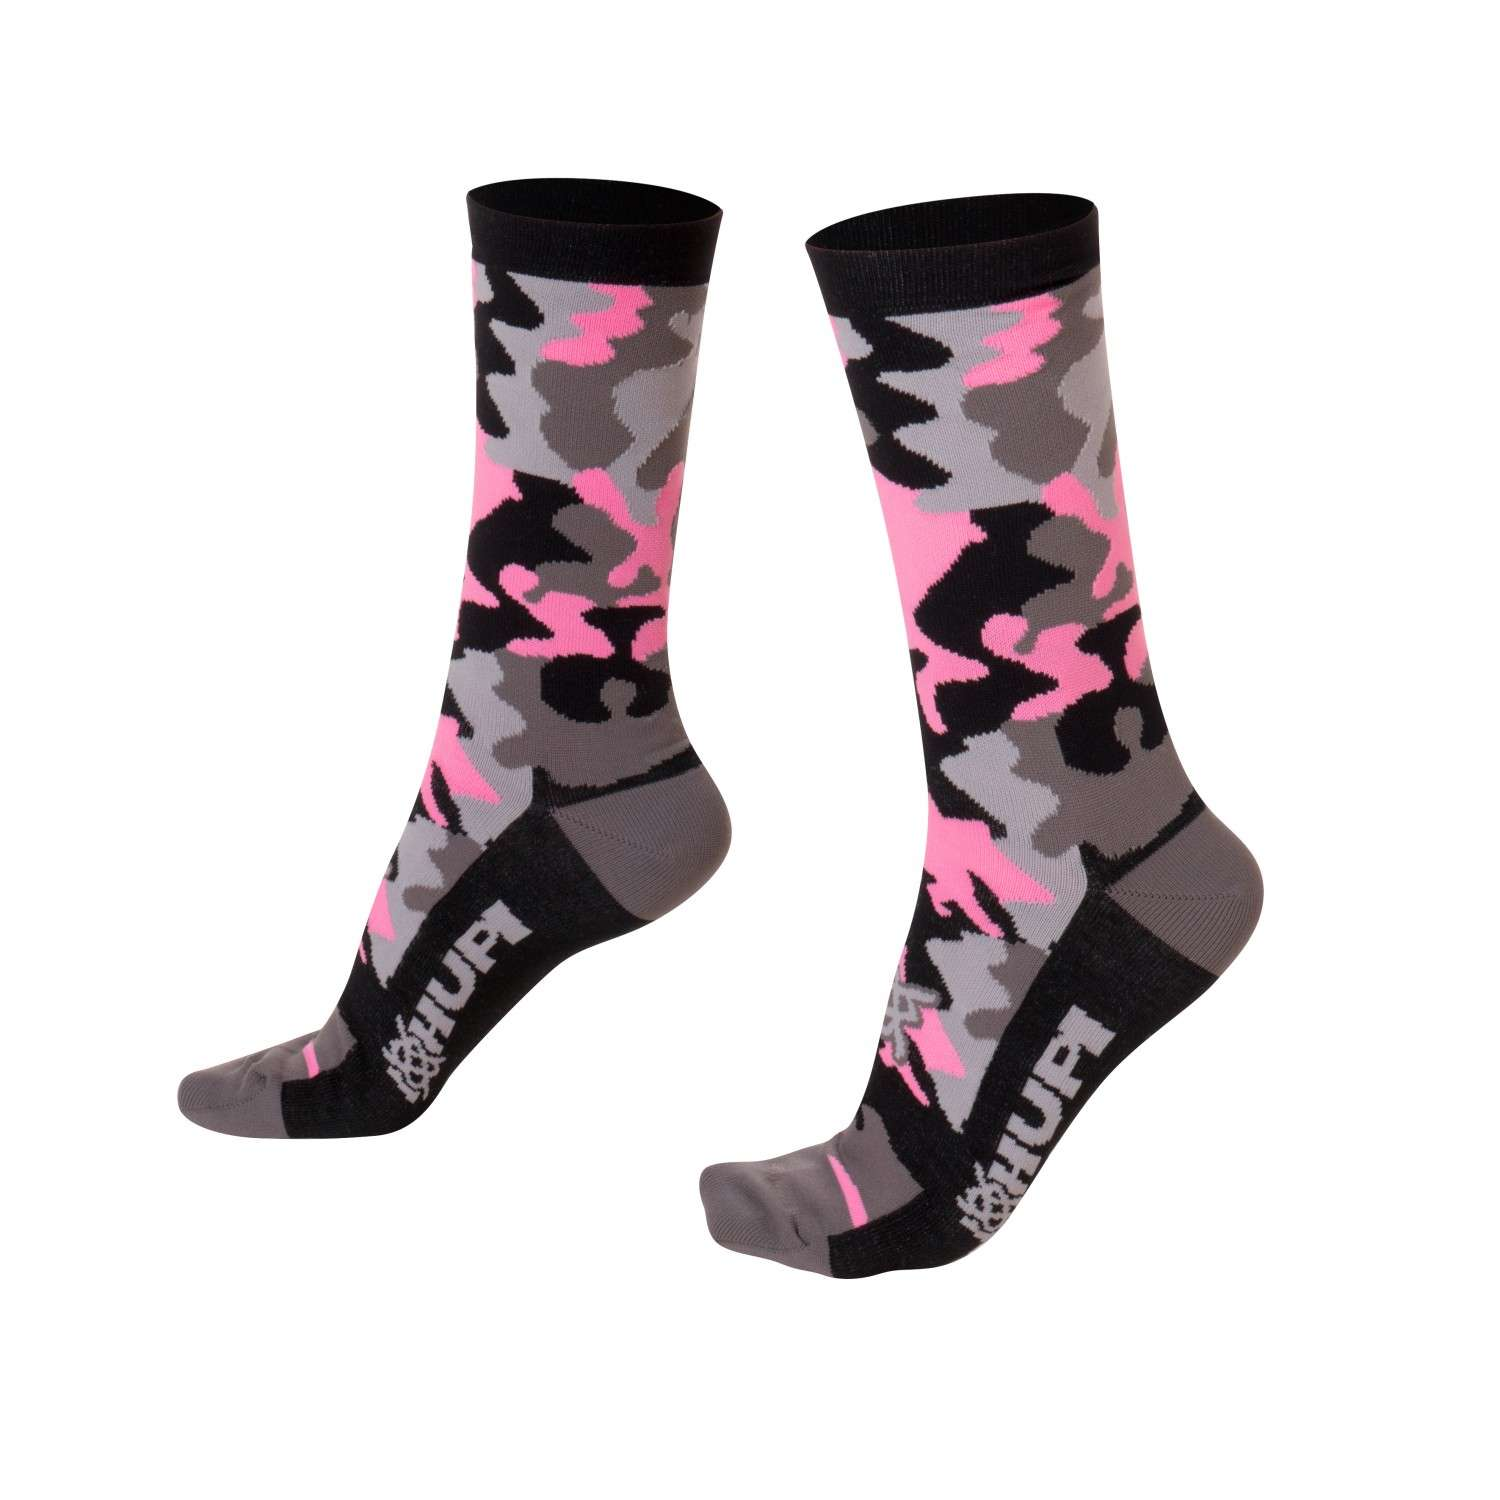 MEIA HUPI CICLISTA COLORFUL COLLECTION CAMO ROSA 495-51